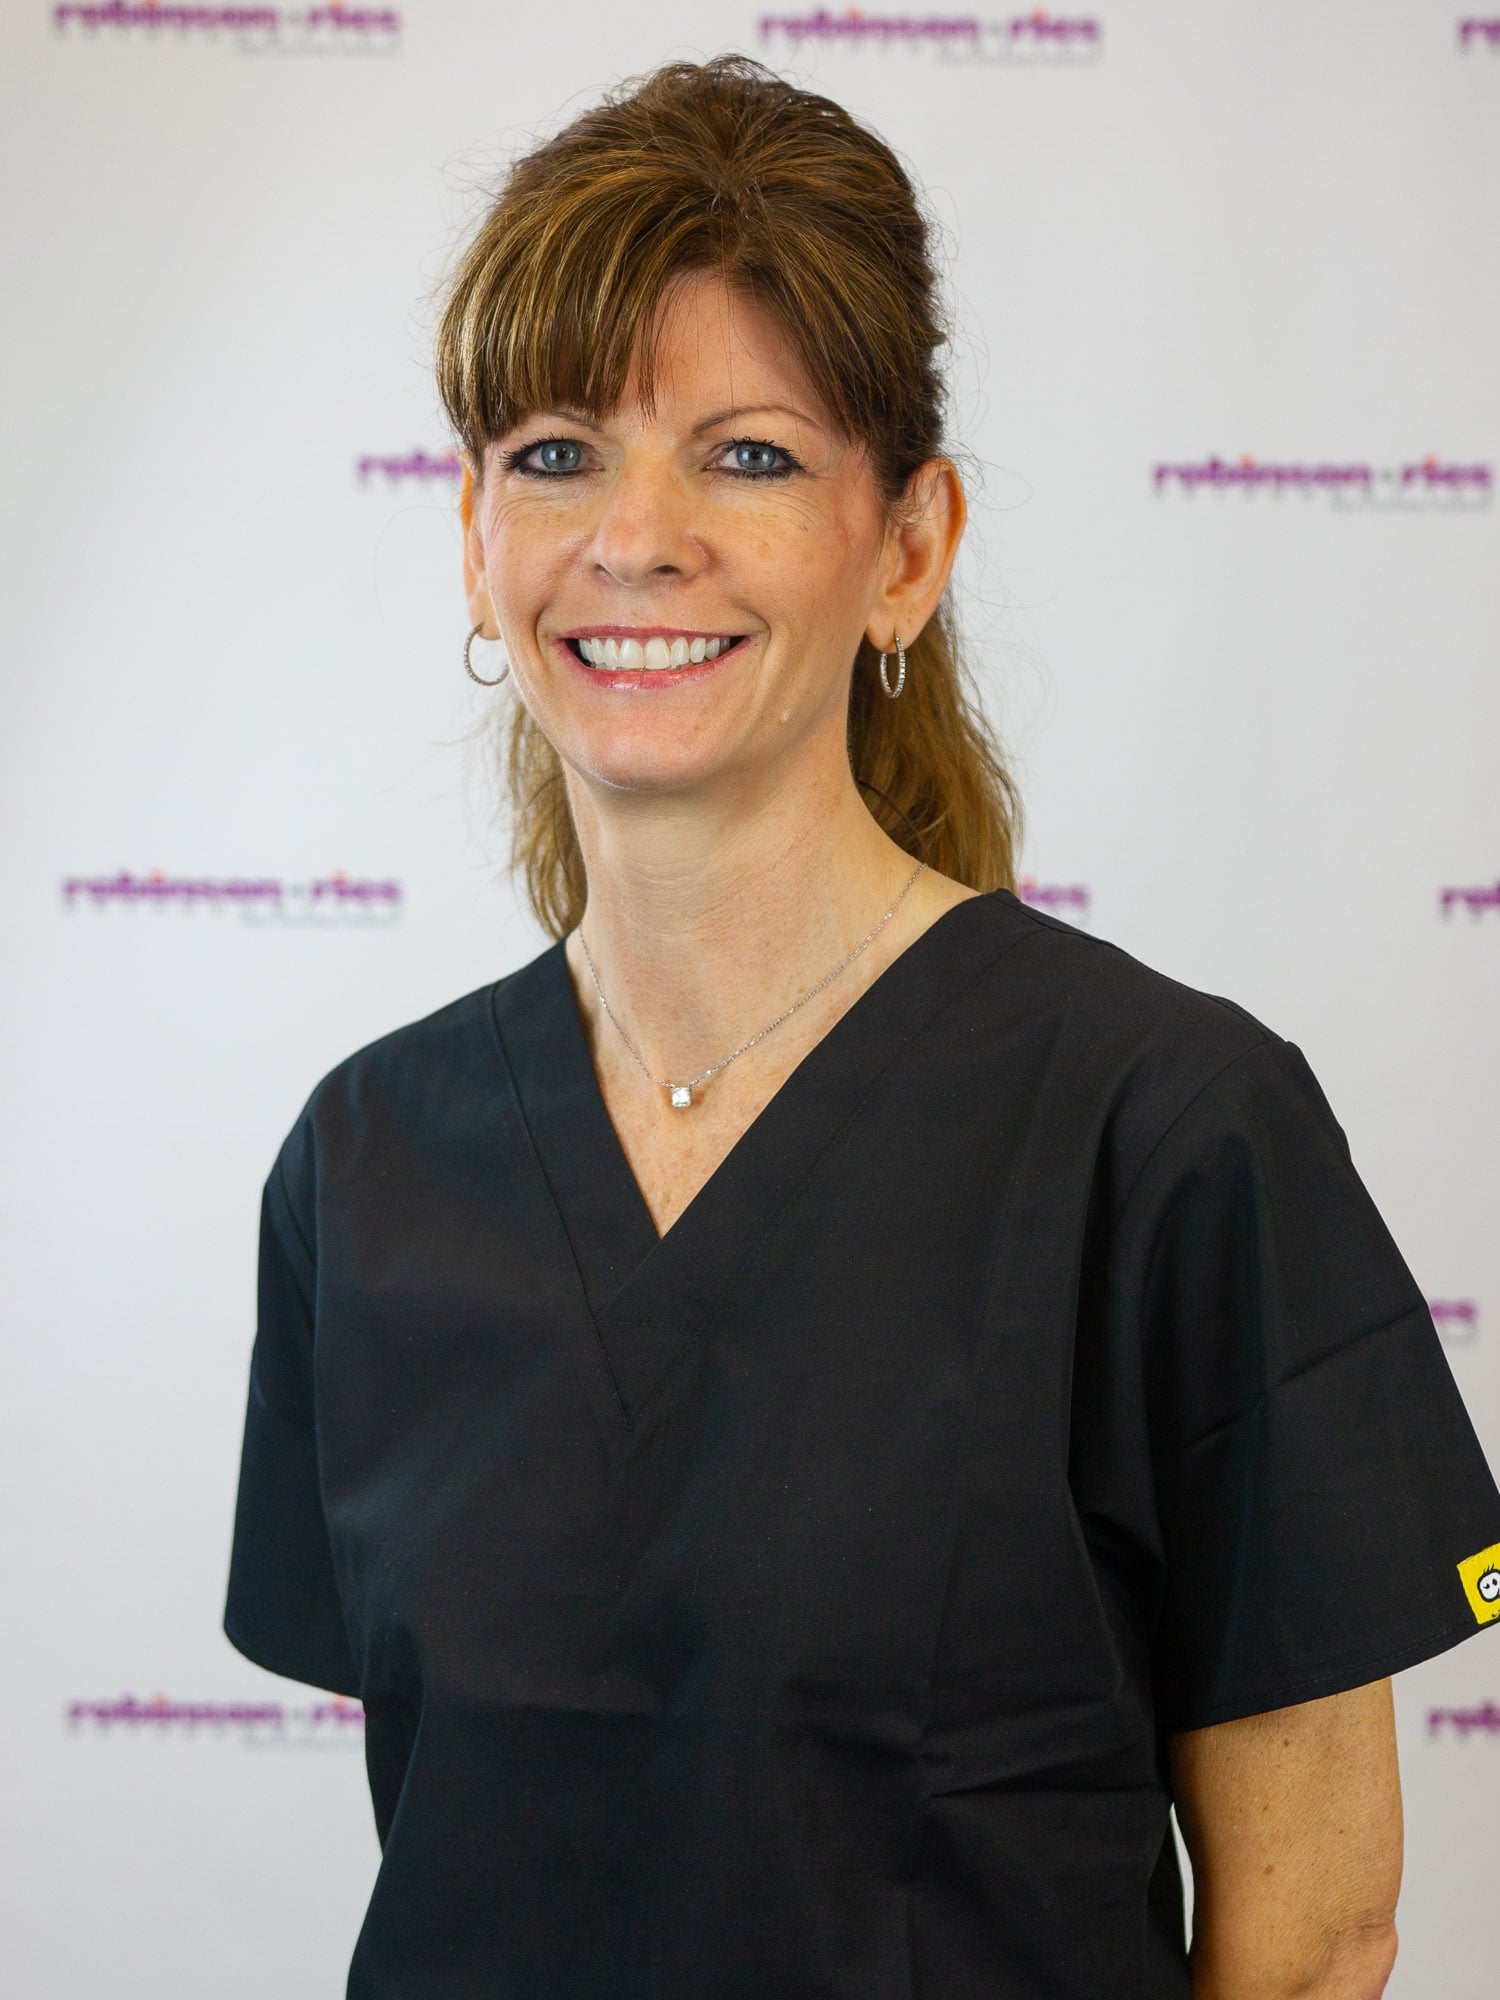 Tina is an Orthodontic Assistant at Robinson + Ries Orthodontics.